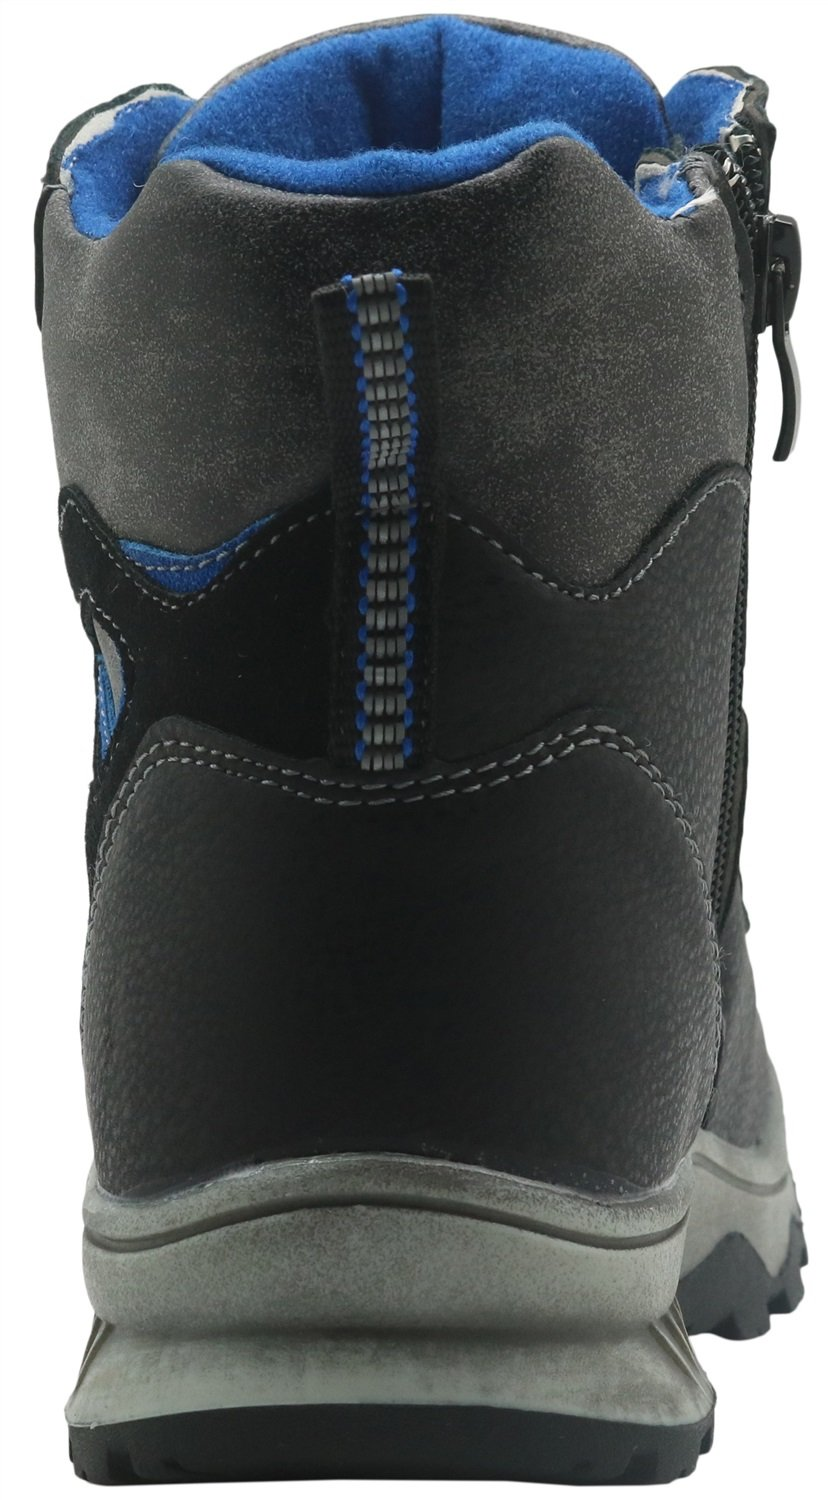 Little Kid//Big Kid Non-Slip Kids Shoes Winter Snow Boots with Woolen Lining Boys Hiking Snow Boots Durable Color : Black , Size : 3.5 M US Big Kid